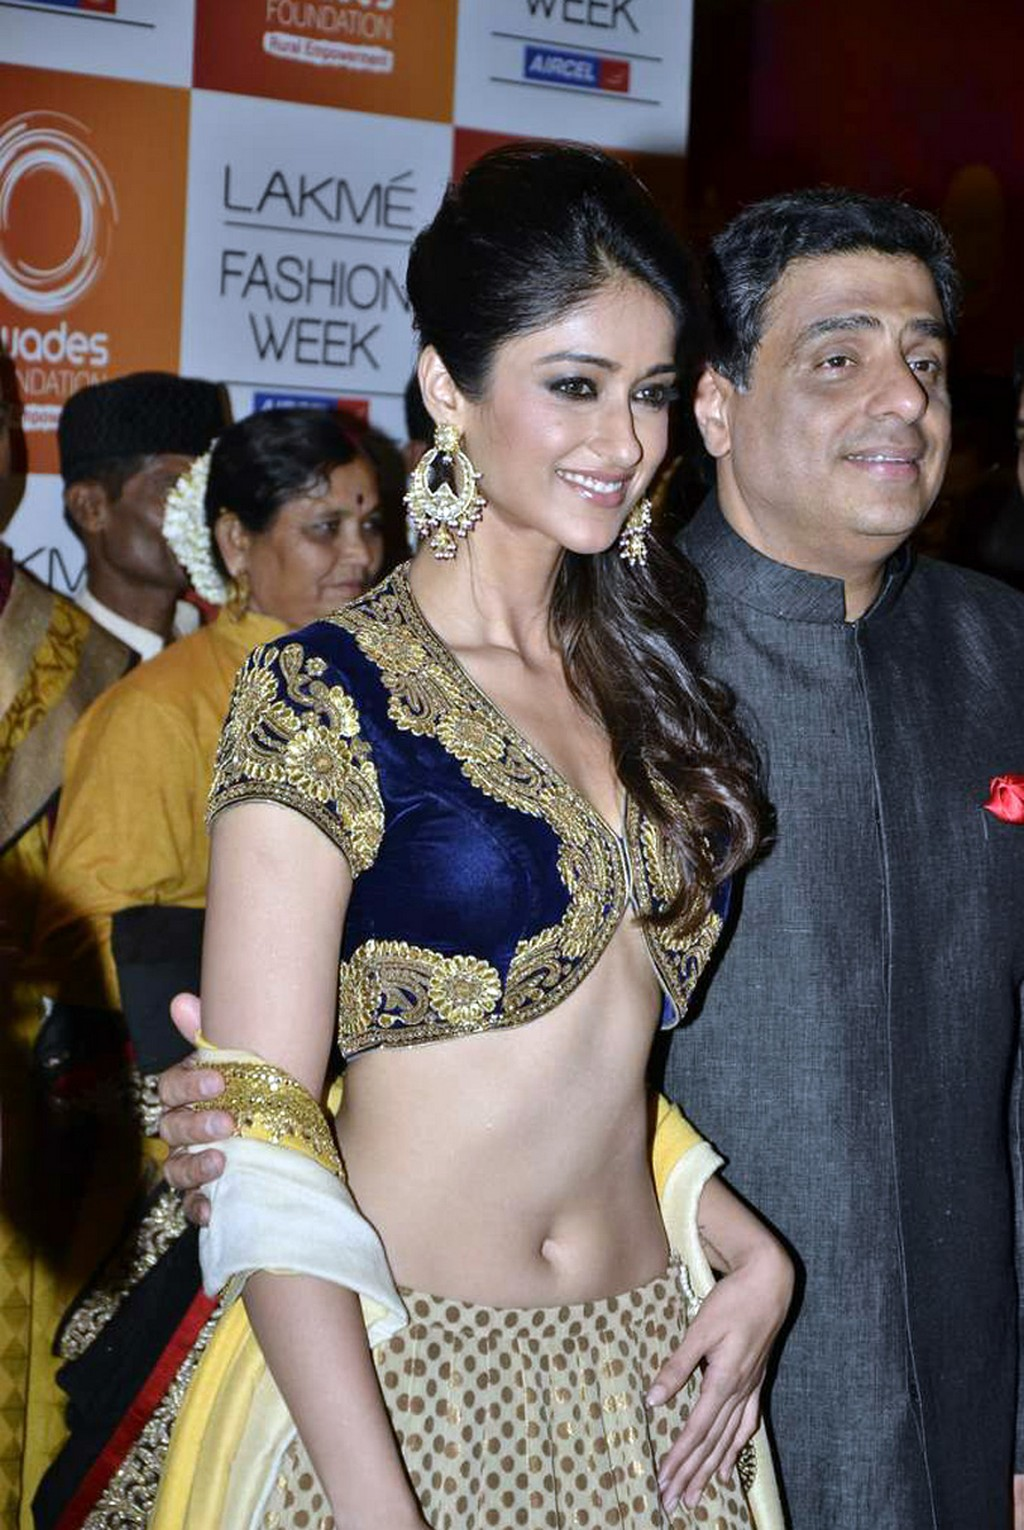 Balakrishna Daughter Tejaswini http://teluguone.com/photos/single/ileana-hot-navel-show-at-lifw-2013-4-4782-122451.html